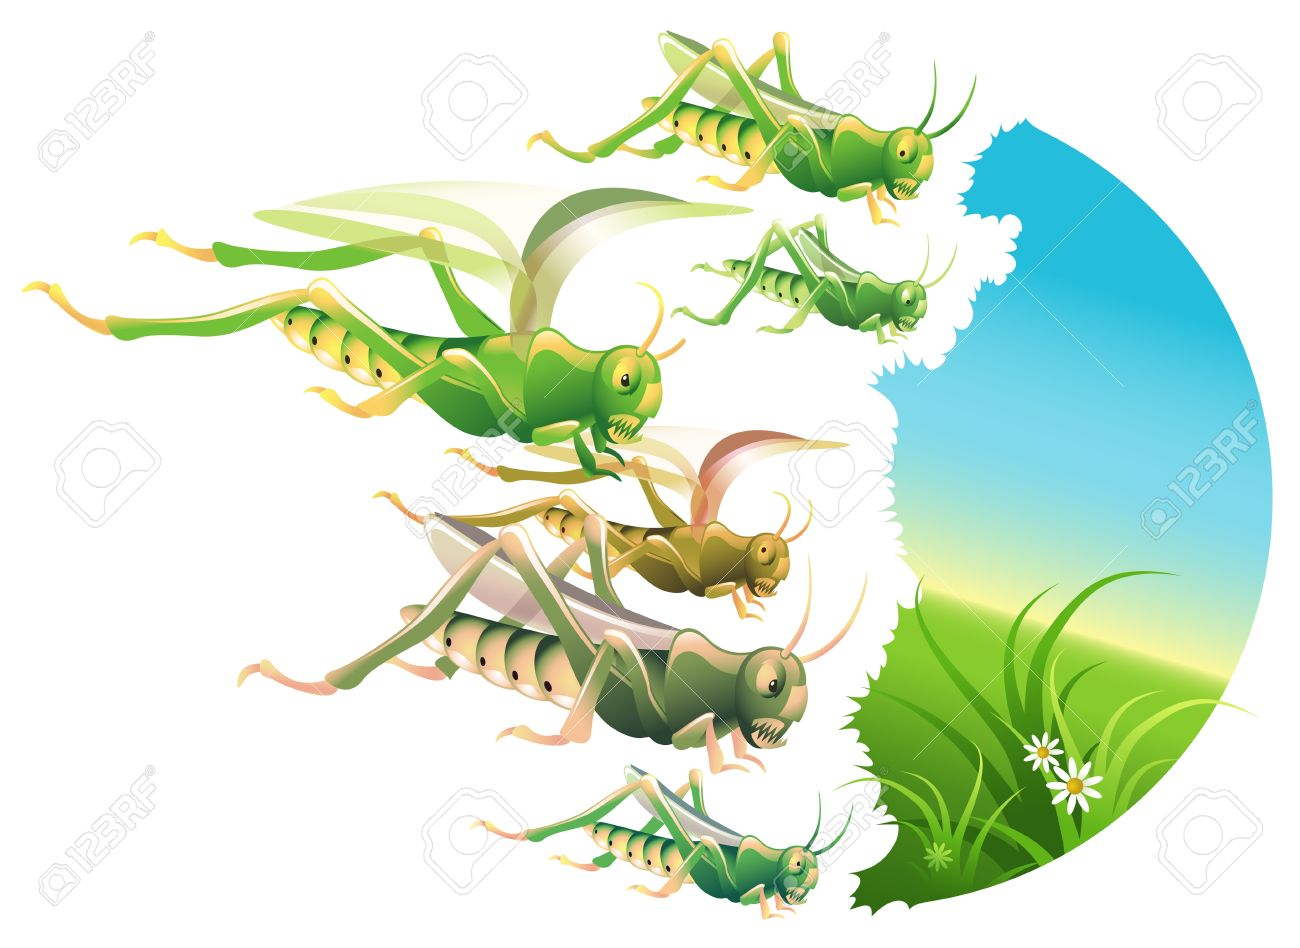 Locust swarm eating everything in their path Stock Vector - 11133161